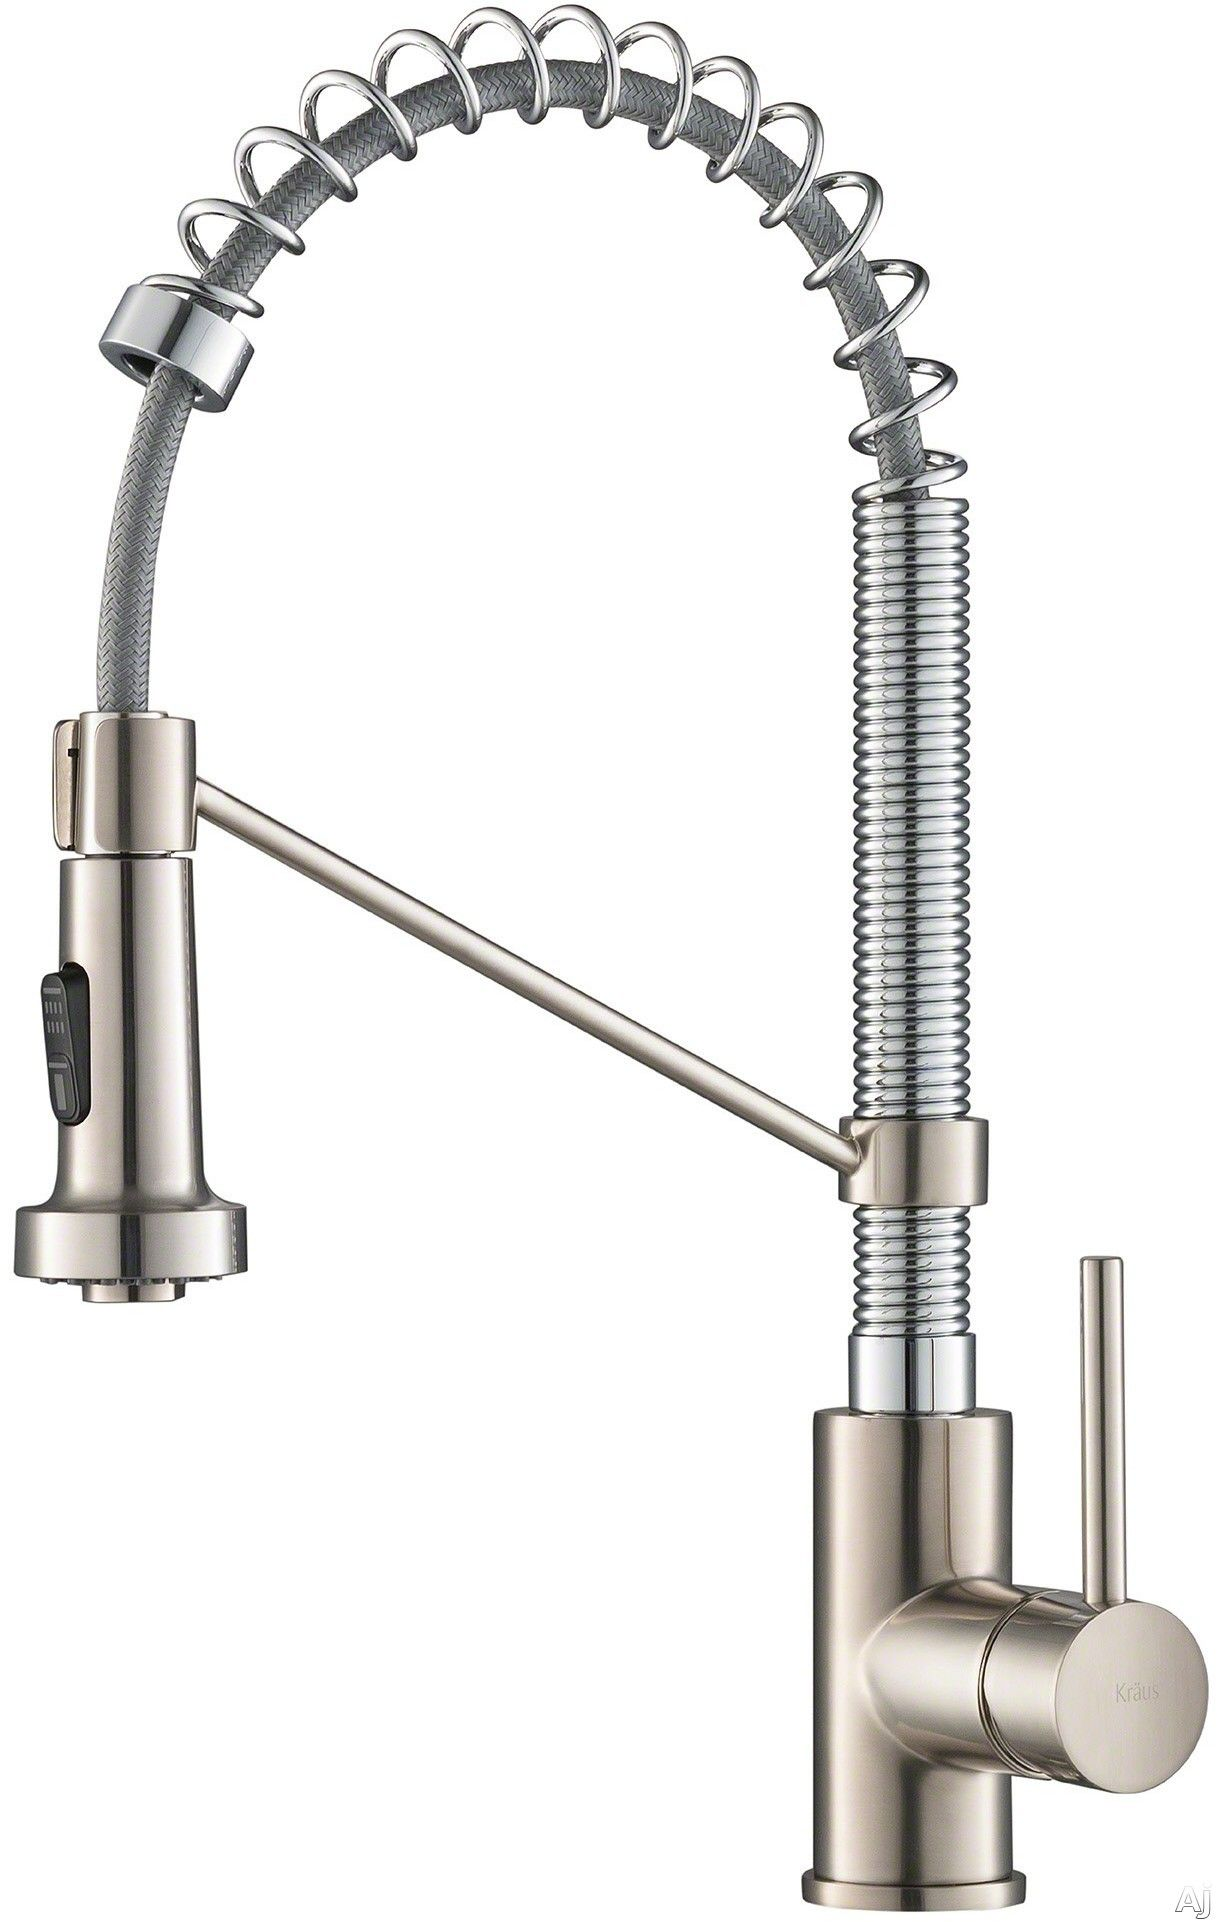 Kraus Kpf1610ss Single Handle Commercial Kitchen Faucet With 1 8 Gmp Flow Rate Reach Technology Dual Function Sprayhead 180 Degree Swivel And Ada Complaint Commercial Kitchen Faucet Kitchen Faucet Commercial Kitchen Kitchen faucet flow rate